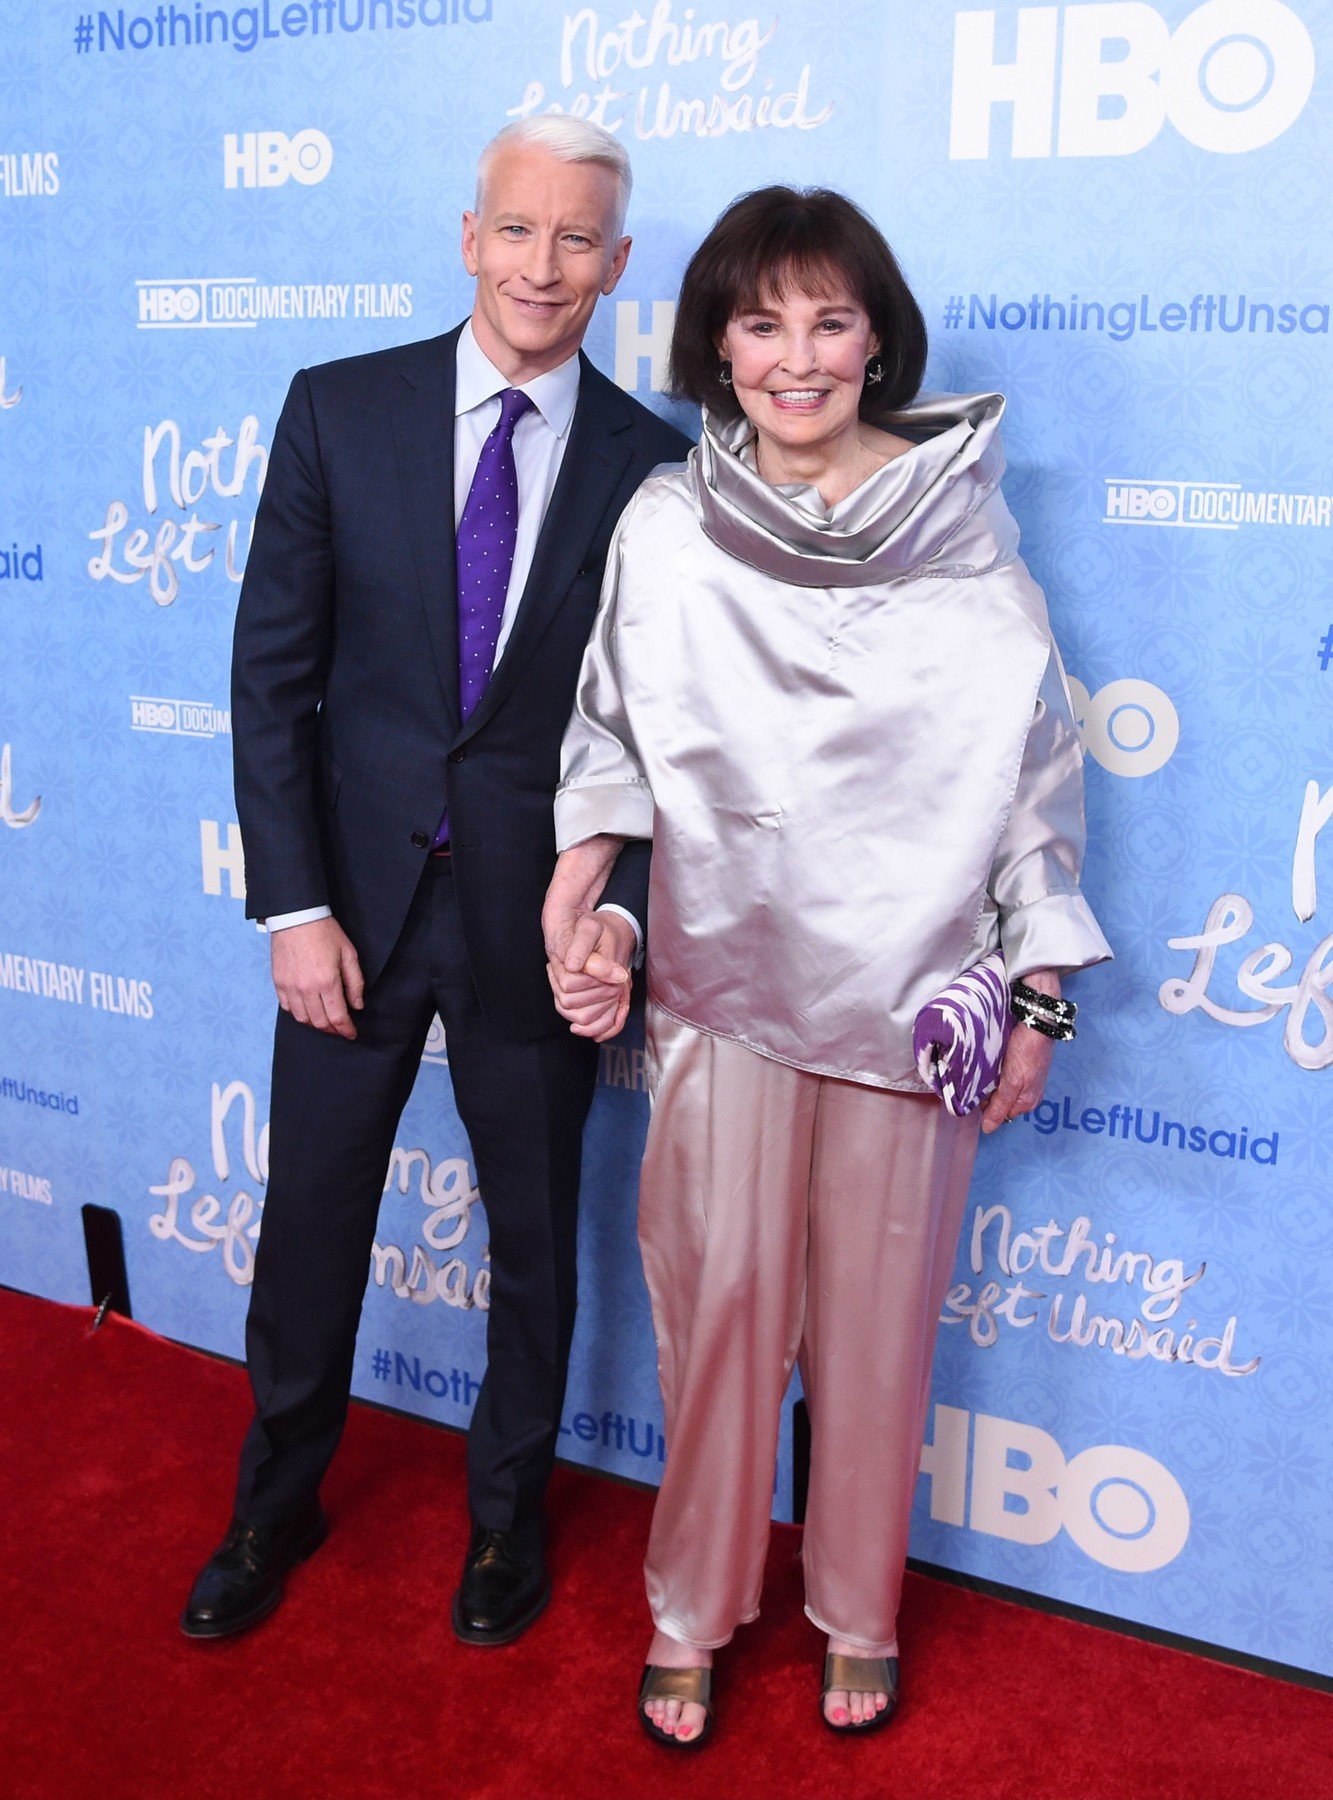 /Anderson Cooper and Gloria Vanderbilt 'Nothing Left Unsaid: Gloria Vanderbilt and Anderson Cooper' HBO documentary premiere, New York, America - 04 Apr 2016, Image: 280575249, License: Rights-managed, Restrictions: , Model Release: no, Credit line: Profimedia, TEMP Rex Features